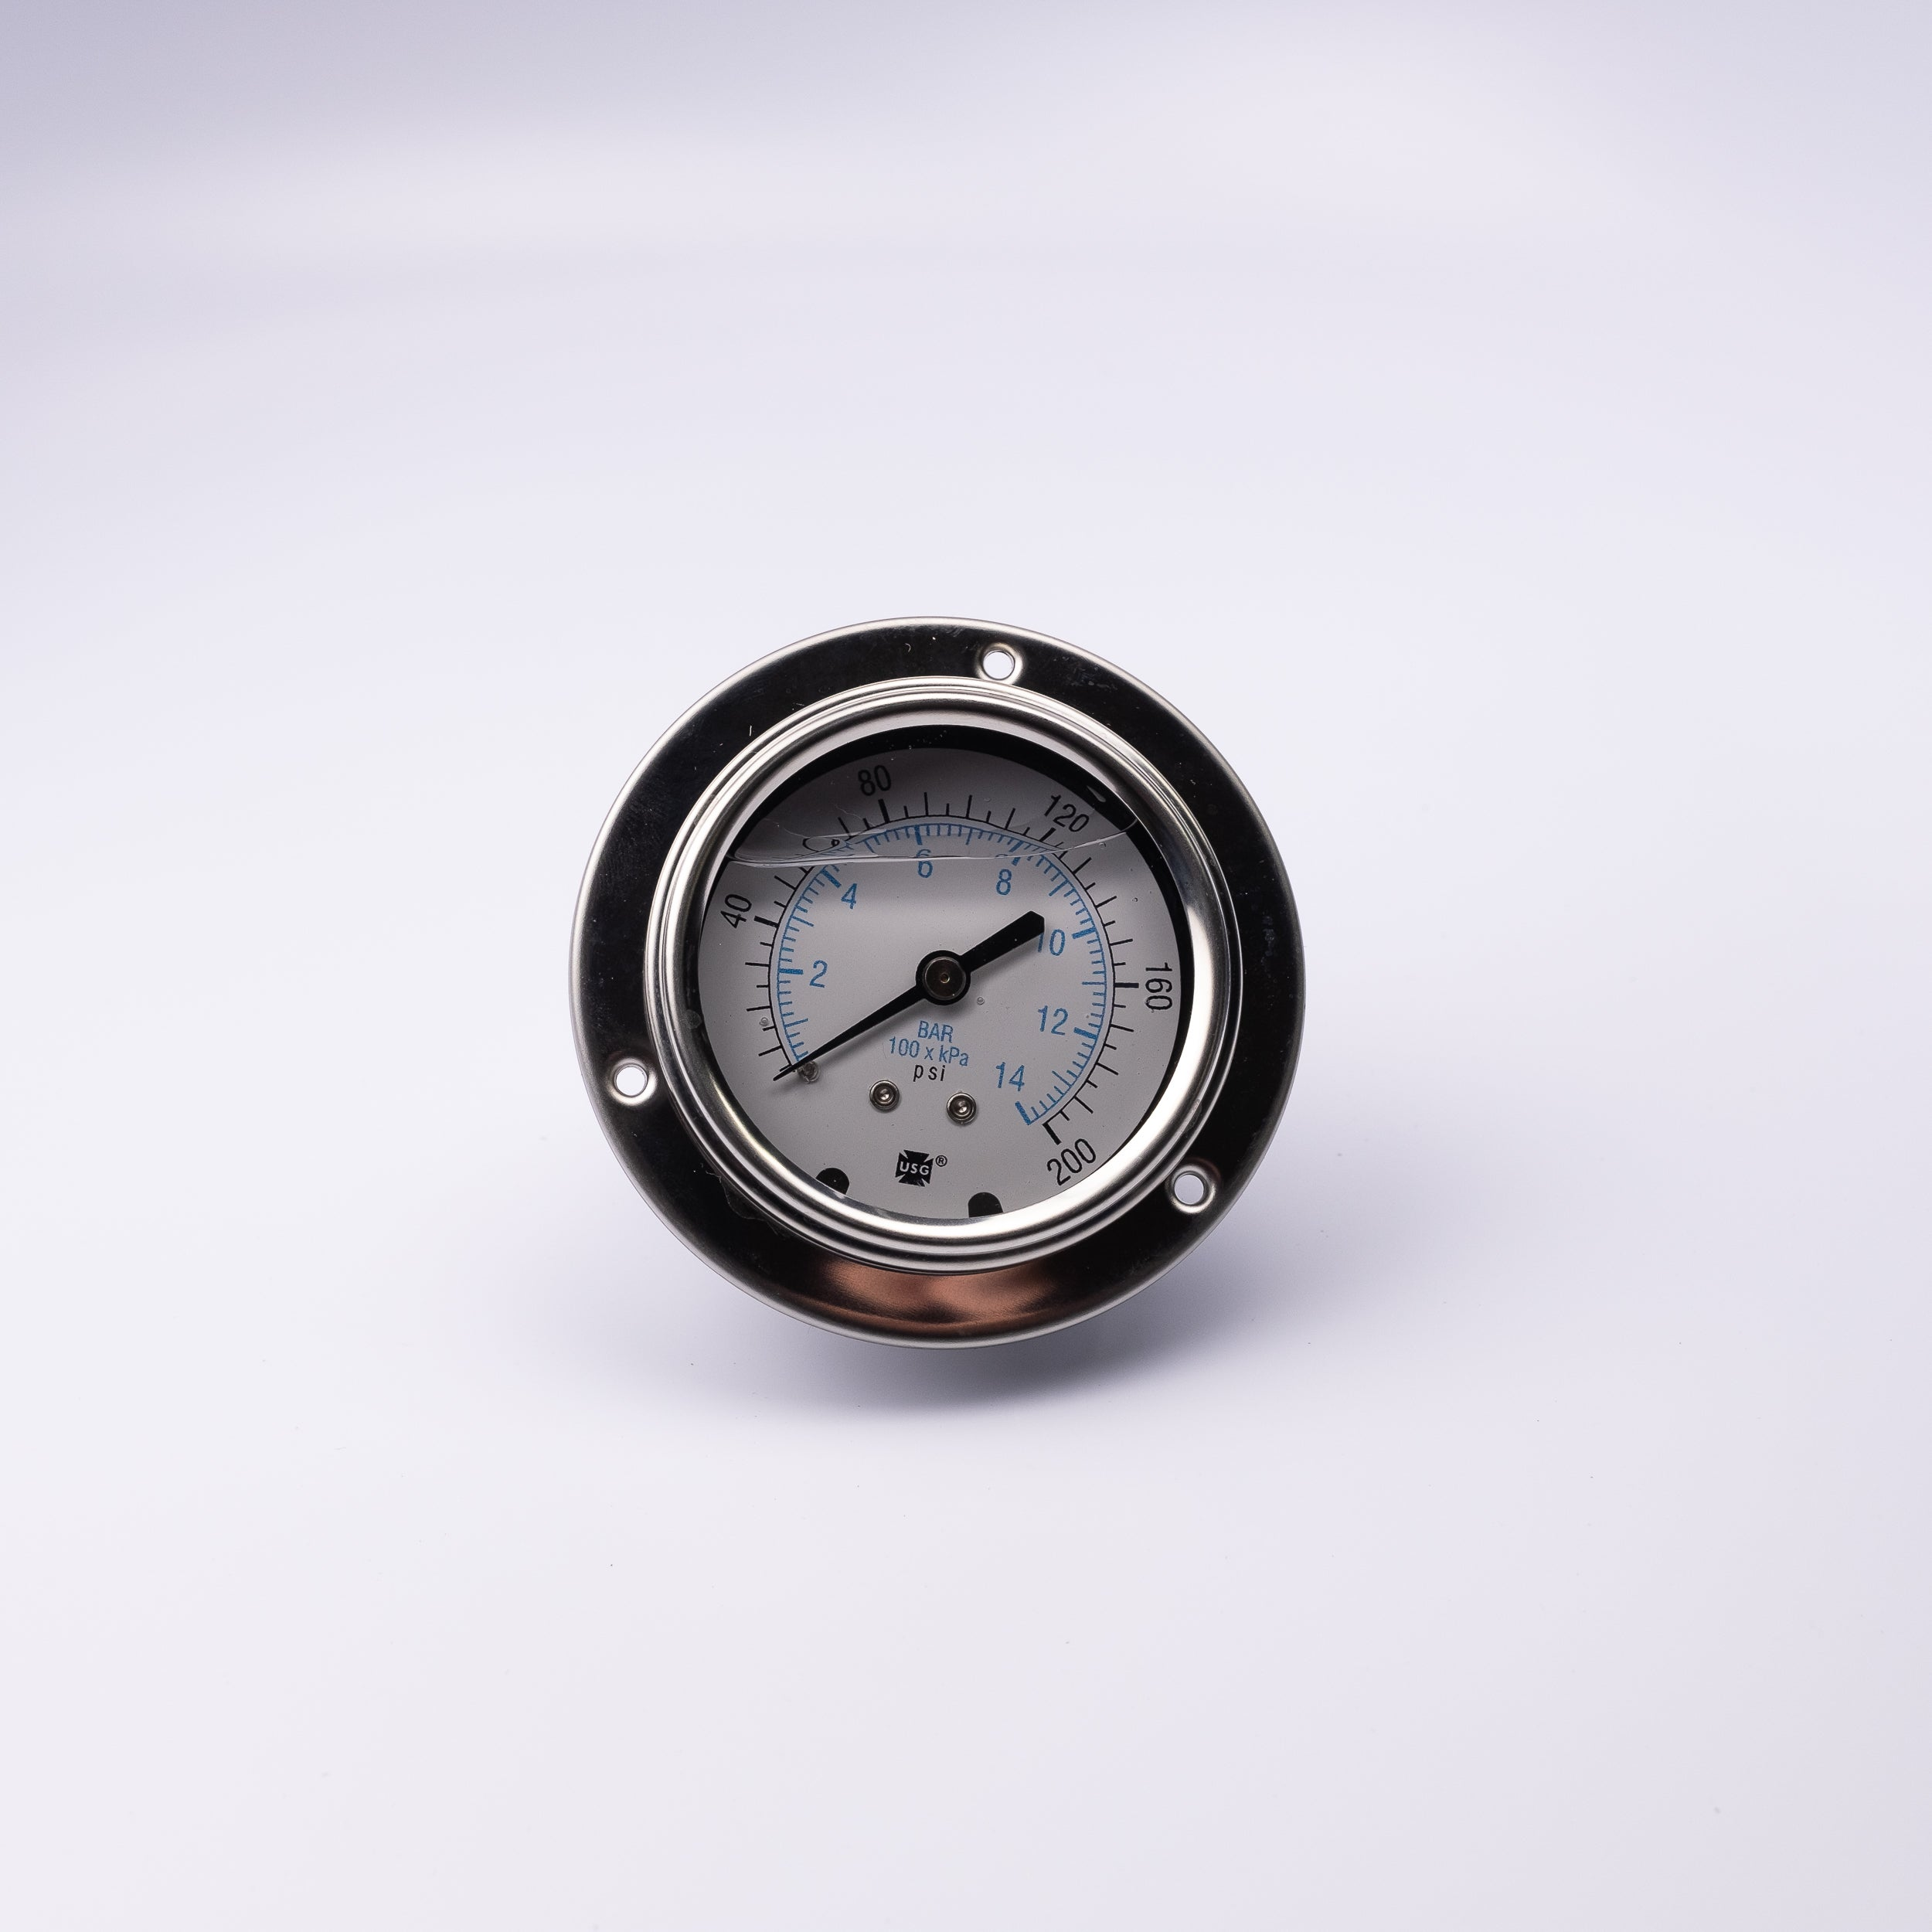 25.911.200 Gauge, 2.5, 1/8 CBM, (0-200 PSI) - Mathers Controls